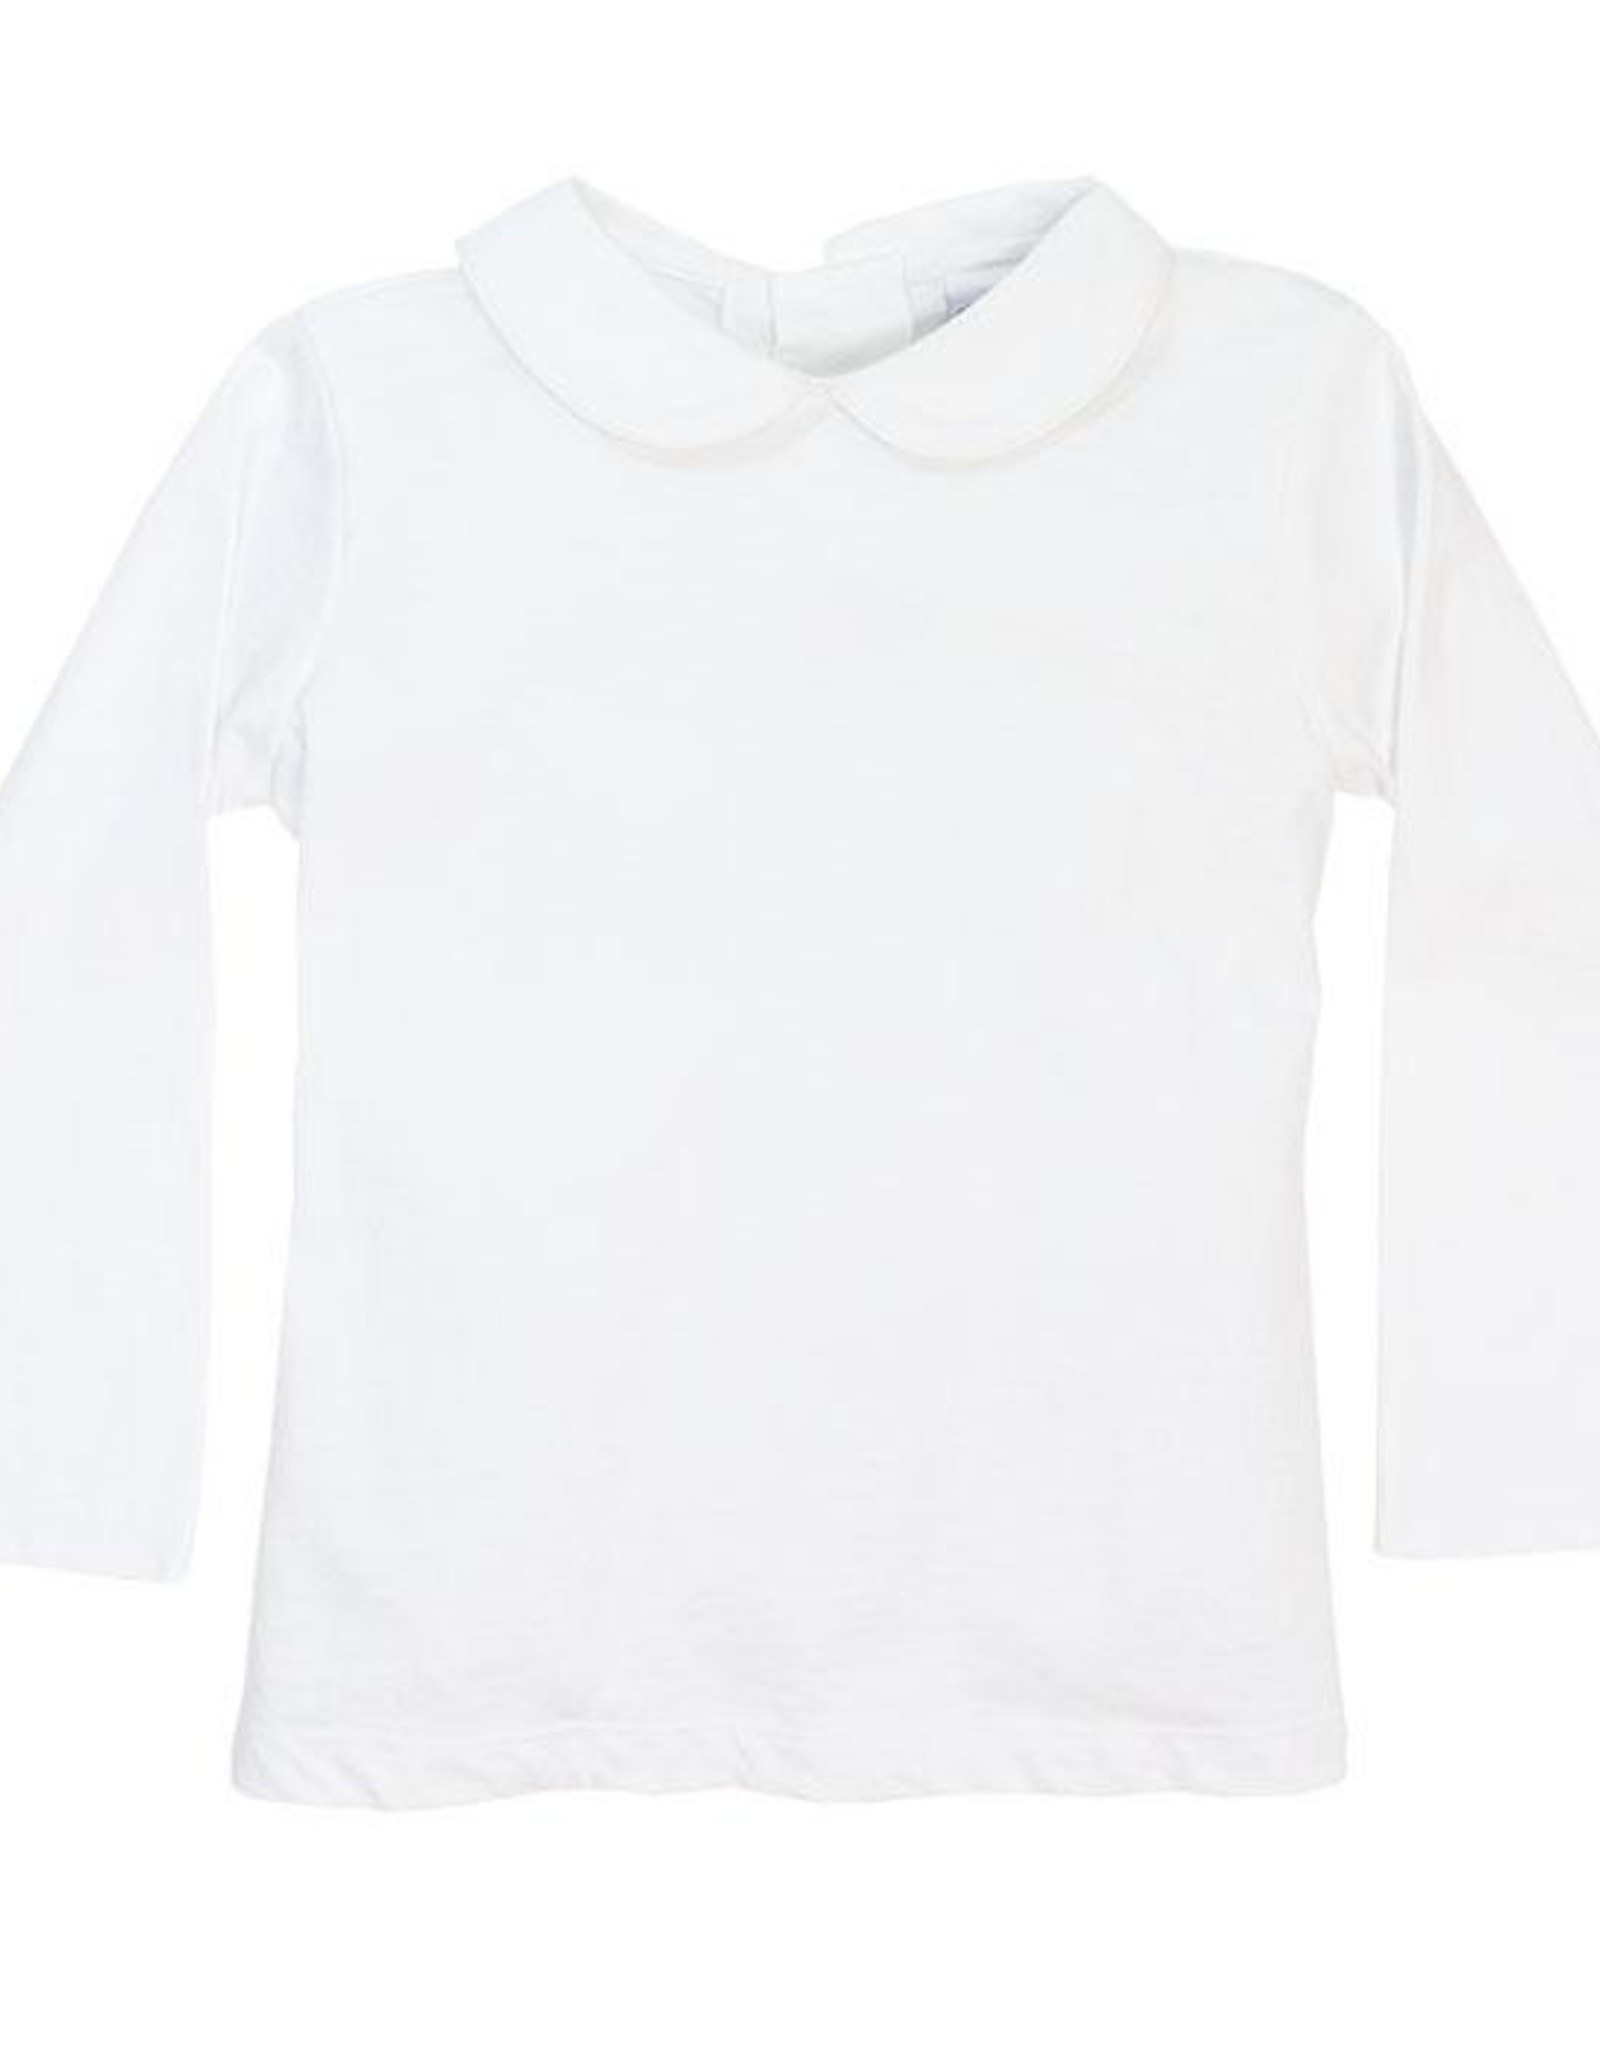 The Bailey Boys White Knit Unisex Piped Shirt